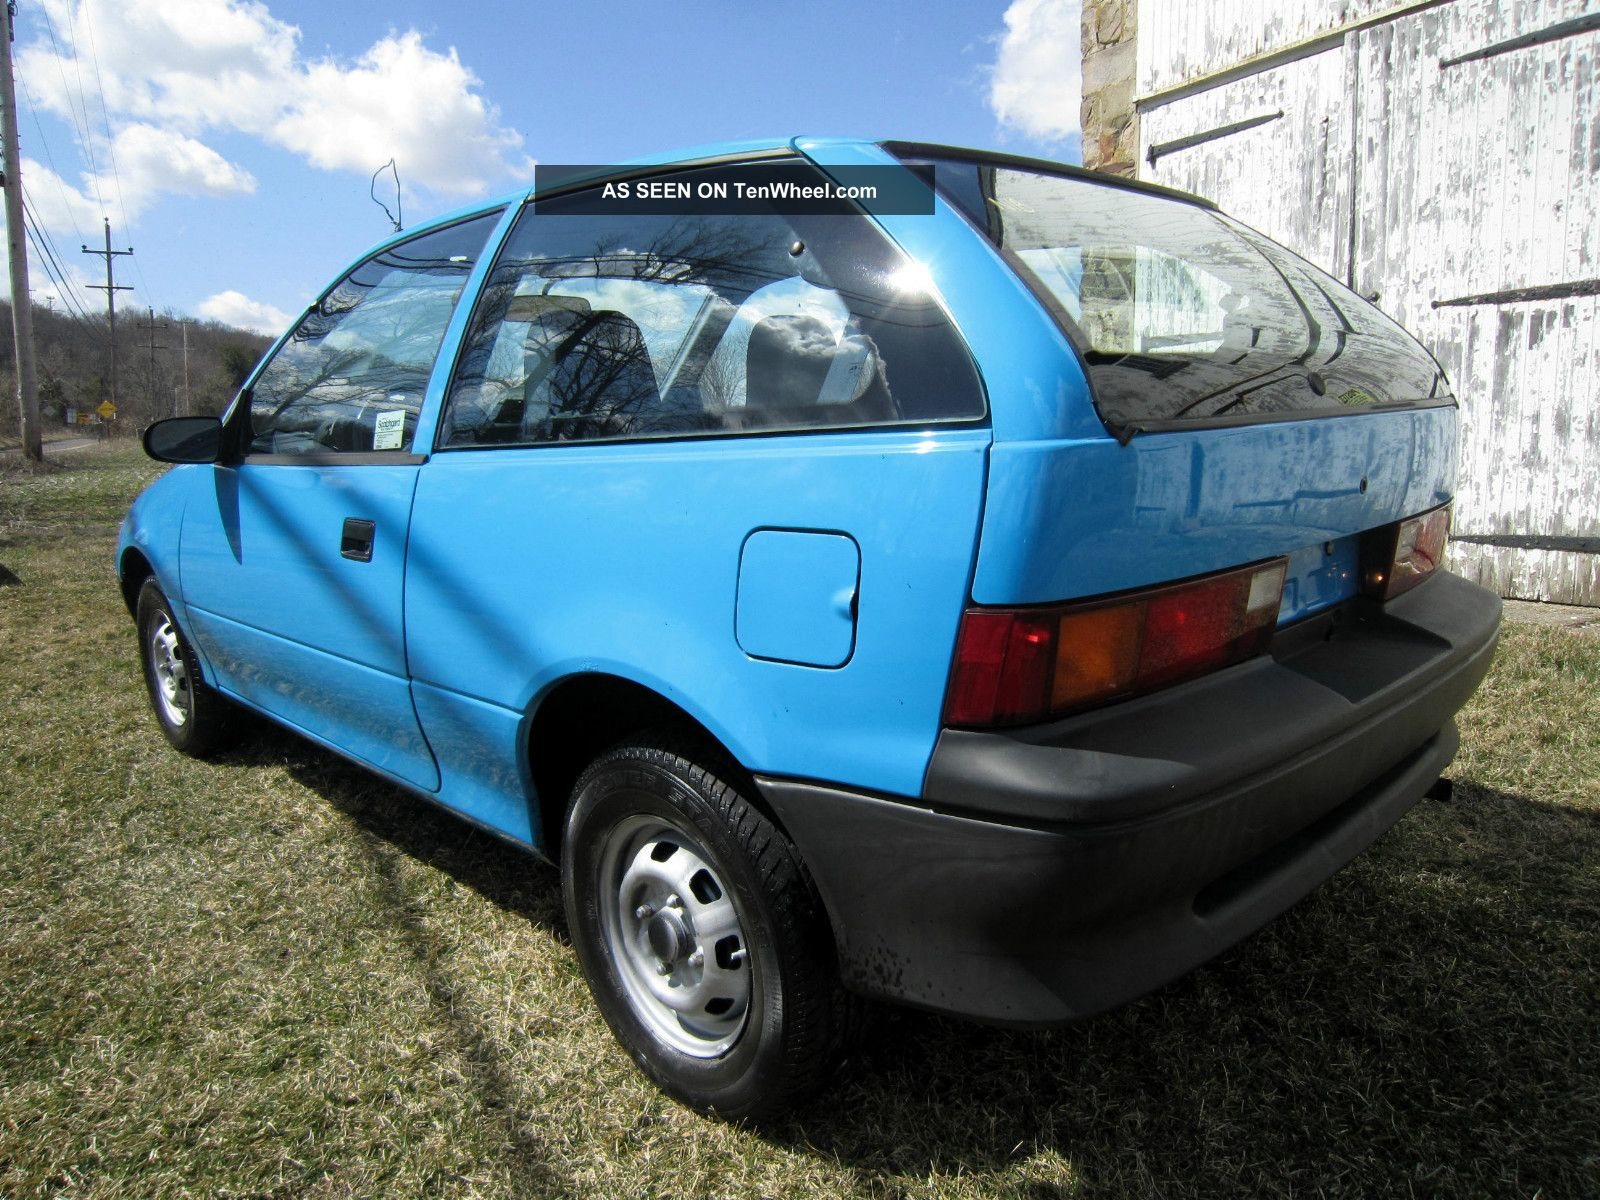 Chevy 3 1 V6 Diagram additionally How Does A Car Radiator Work Thumbnail in addition Geo Tracker 1 6l Engine as well Chevrolet Silverado additionally Geo Metro 3 Cylinder Engine Specs. on geo metro engines